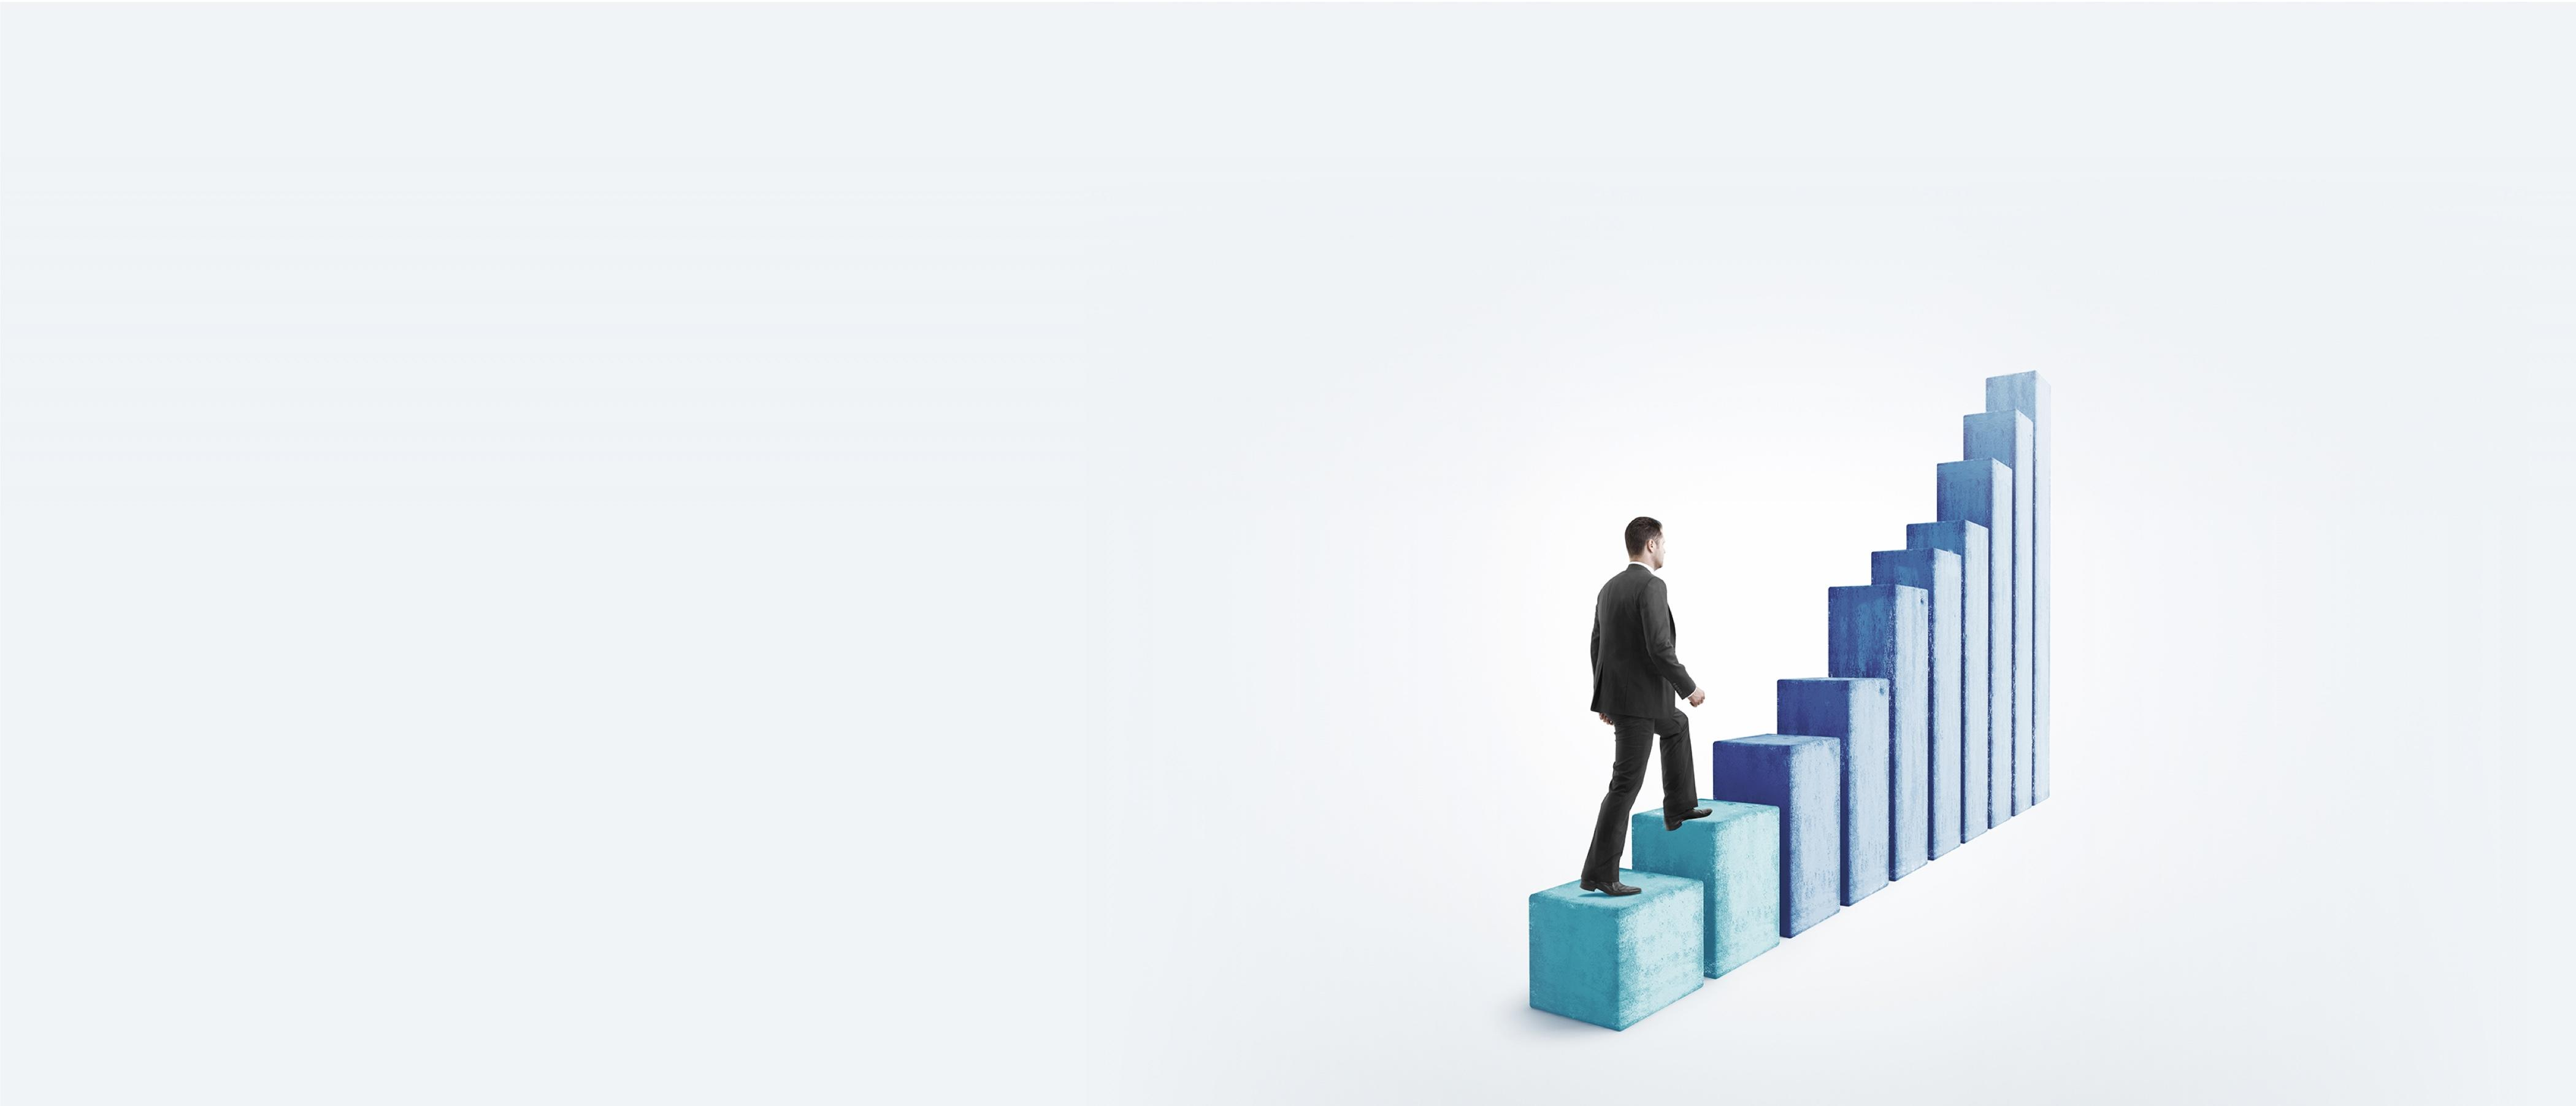 Business man ascending a 3-dimensional bar chart